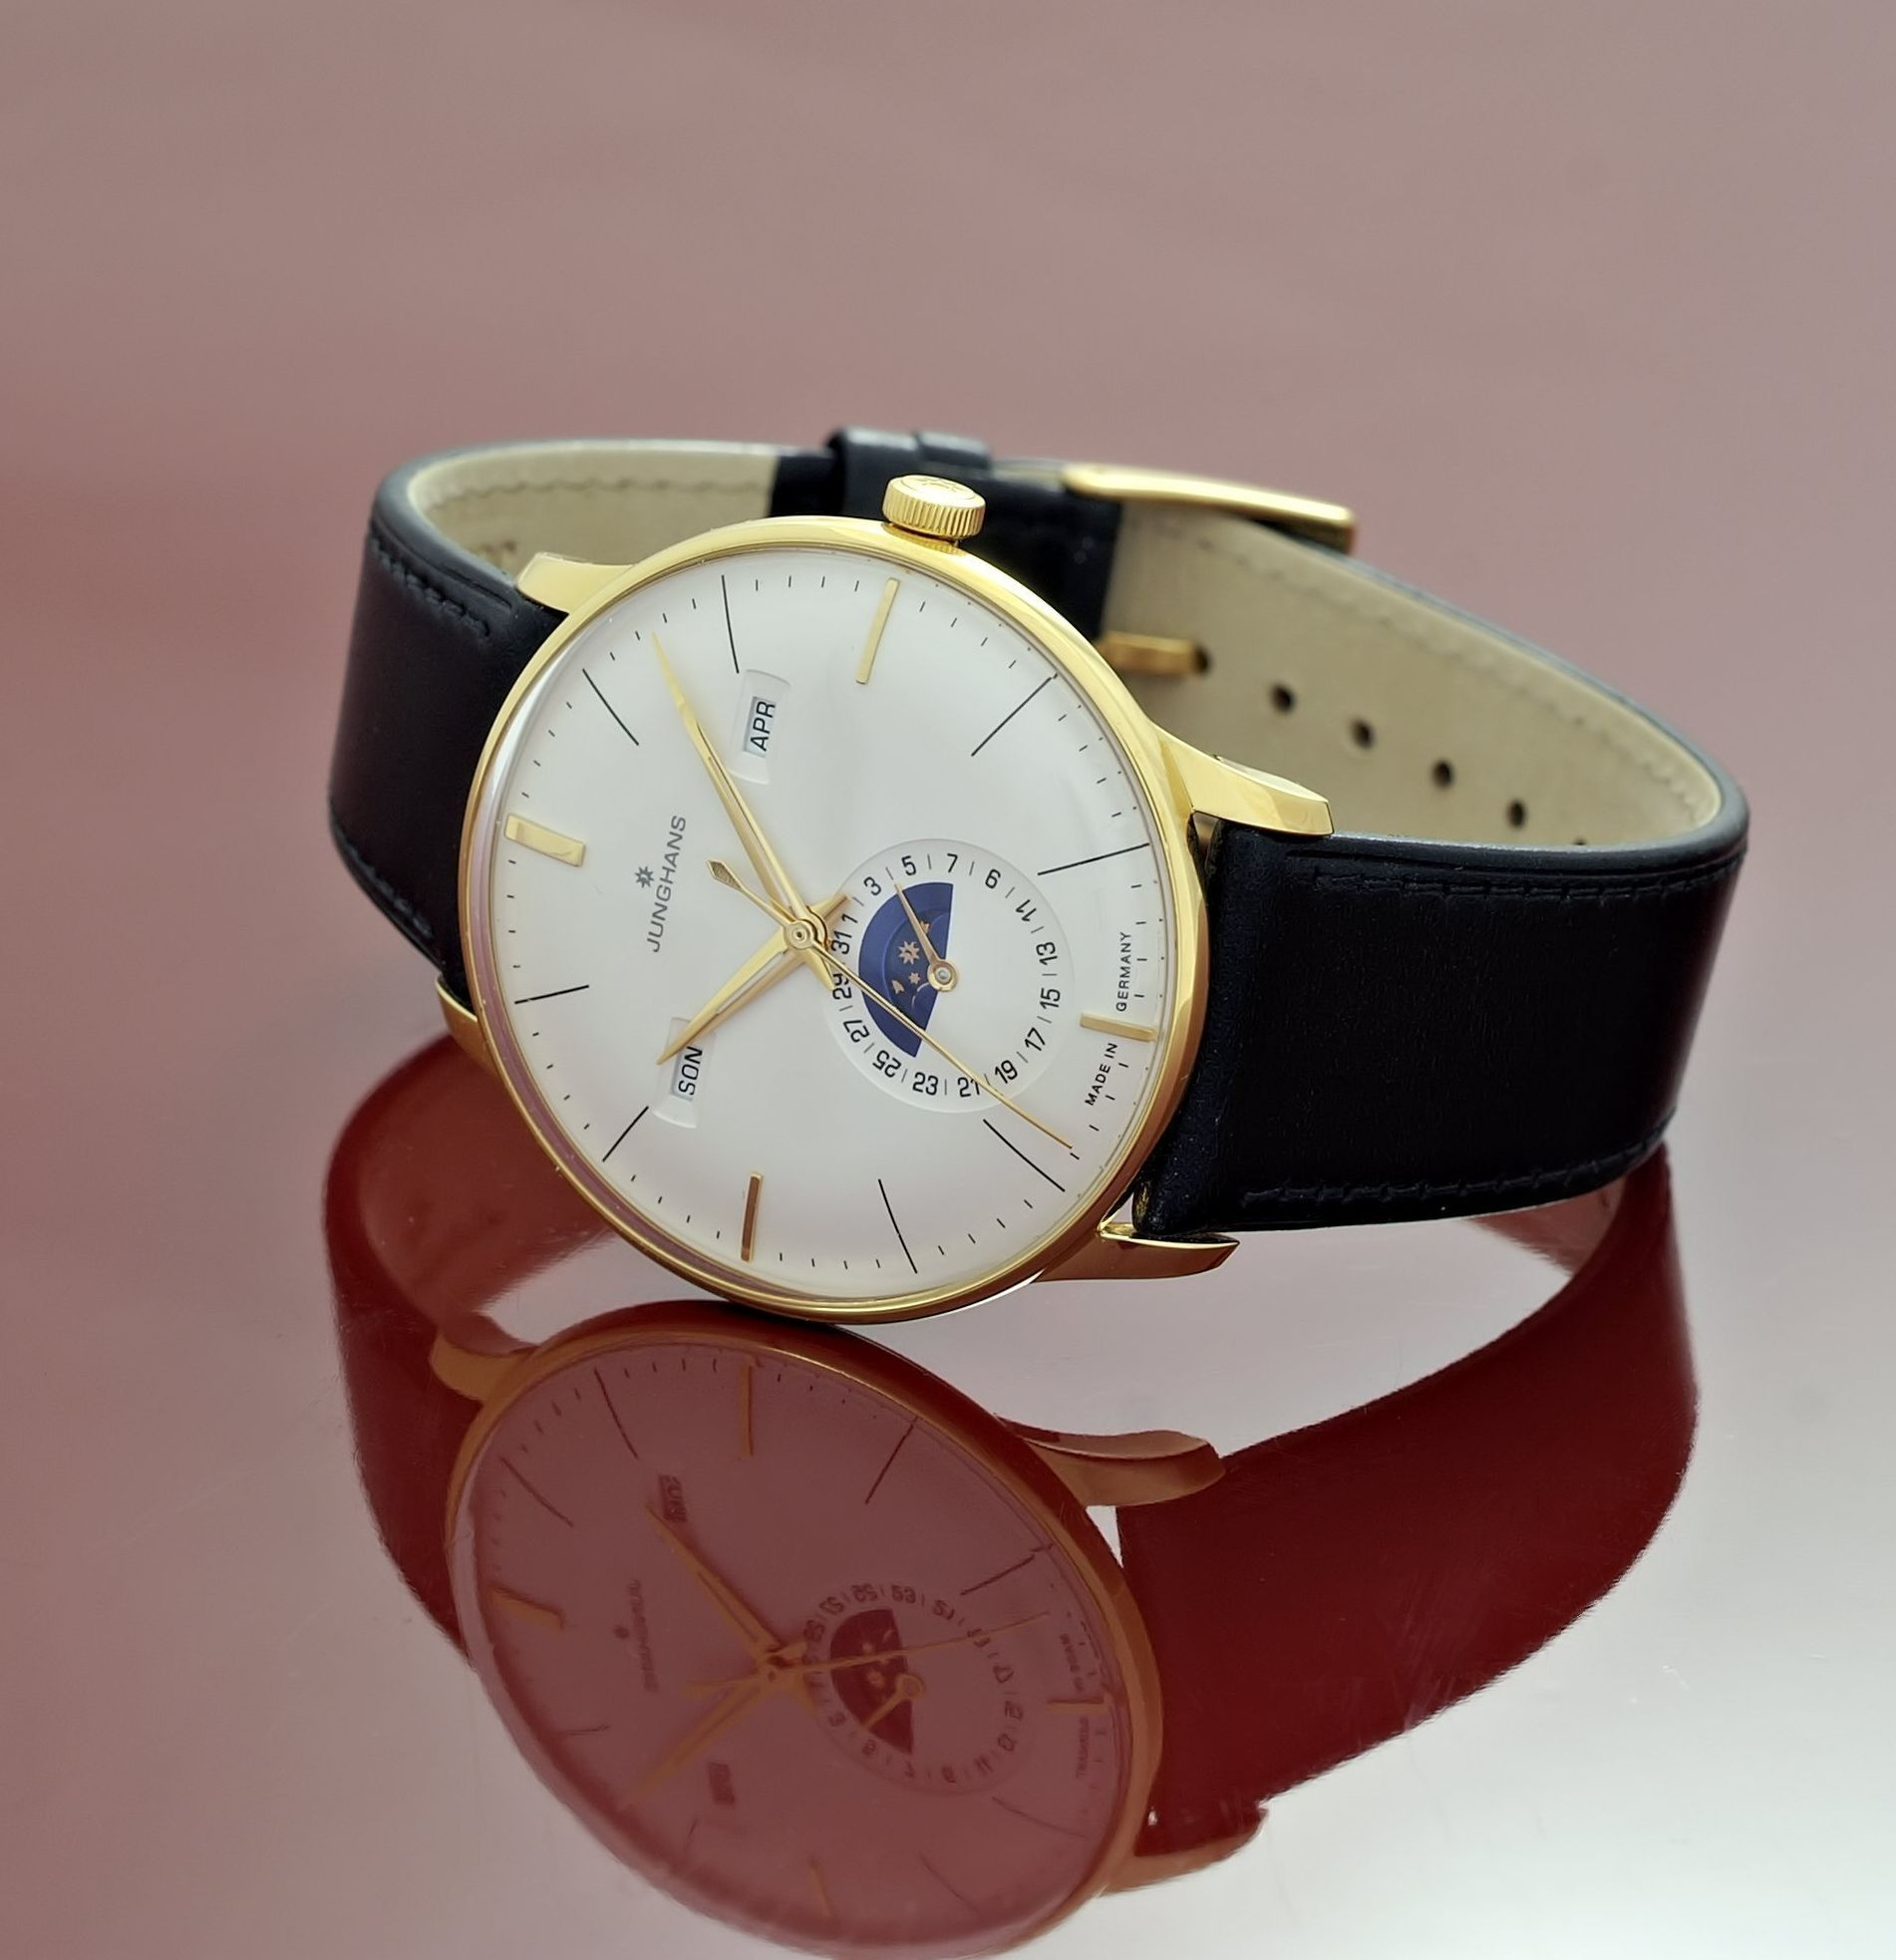 Junghans Uhren Junghans Meister Mondphase Watchful Watch Watches